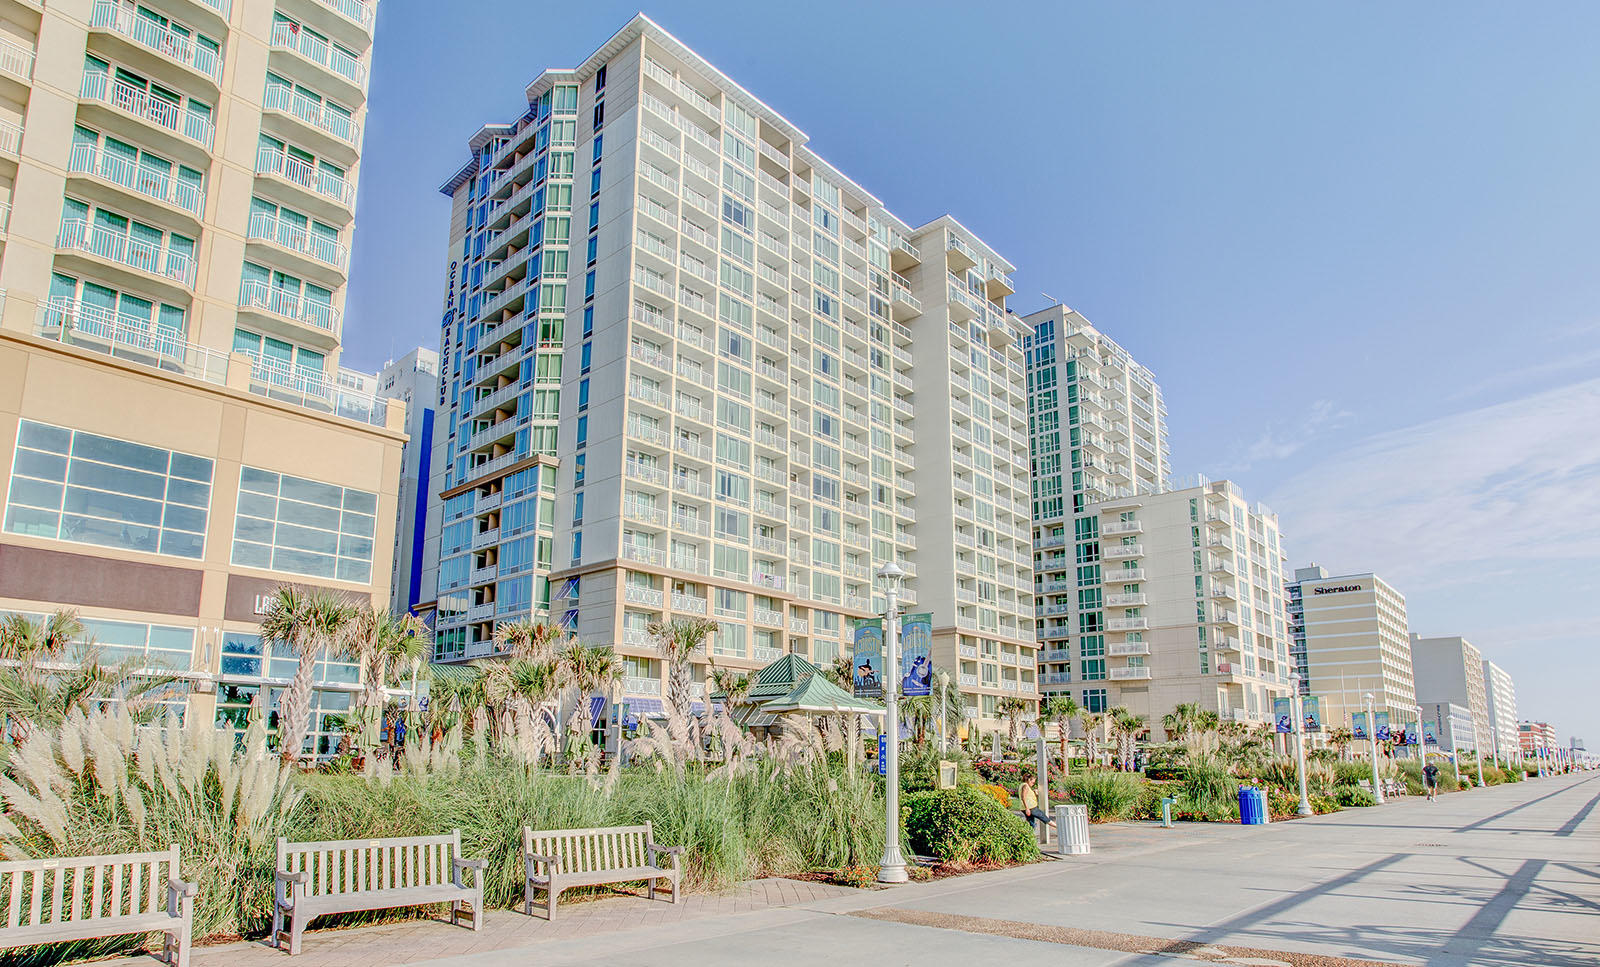 2 bedroom family resorts hotels in virginia beach - 2 bedroom hotels in virginia beach ...